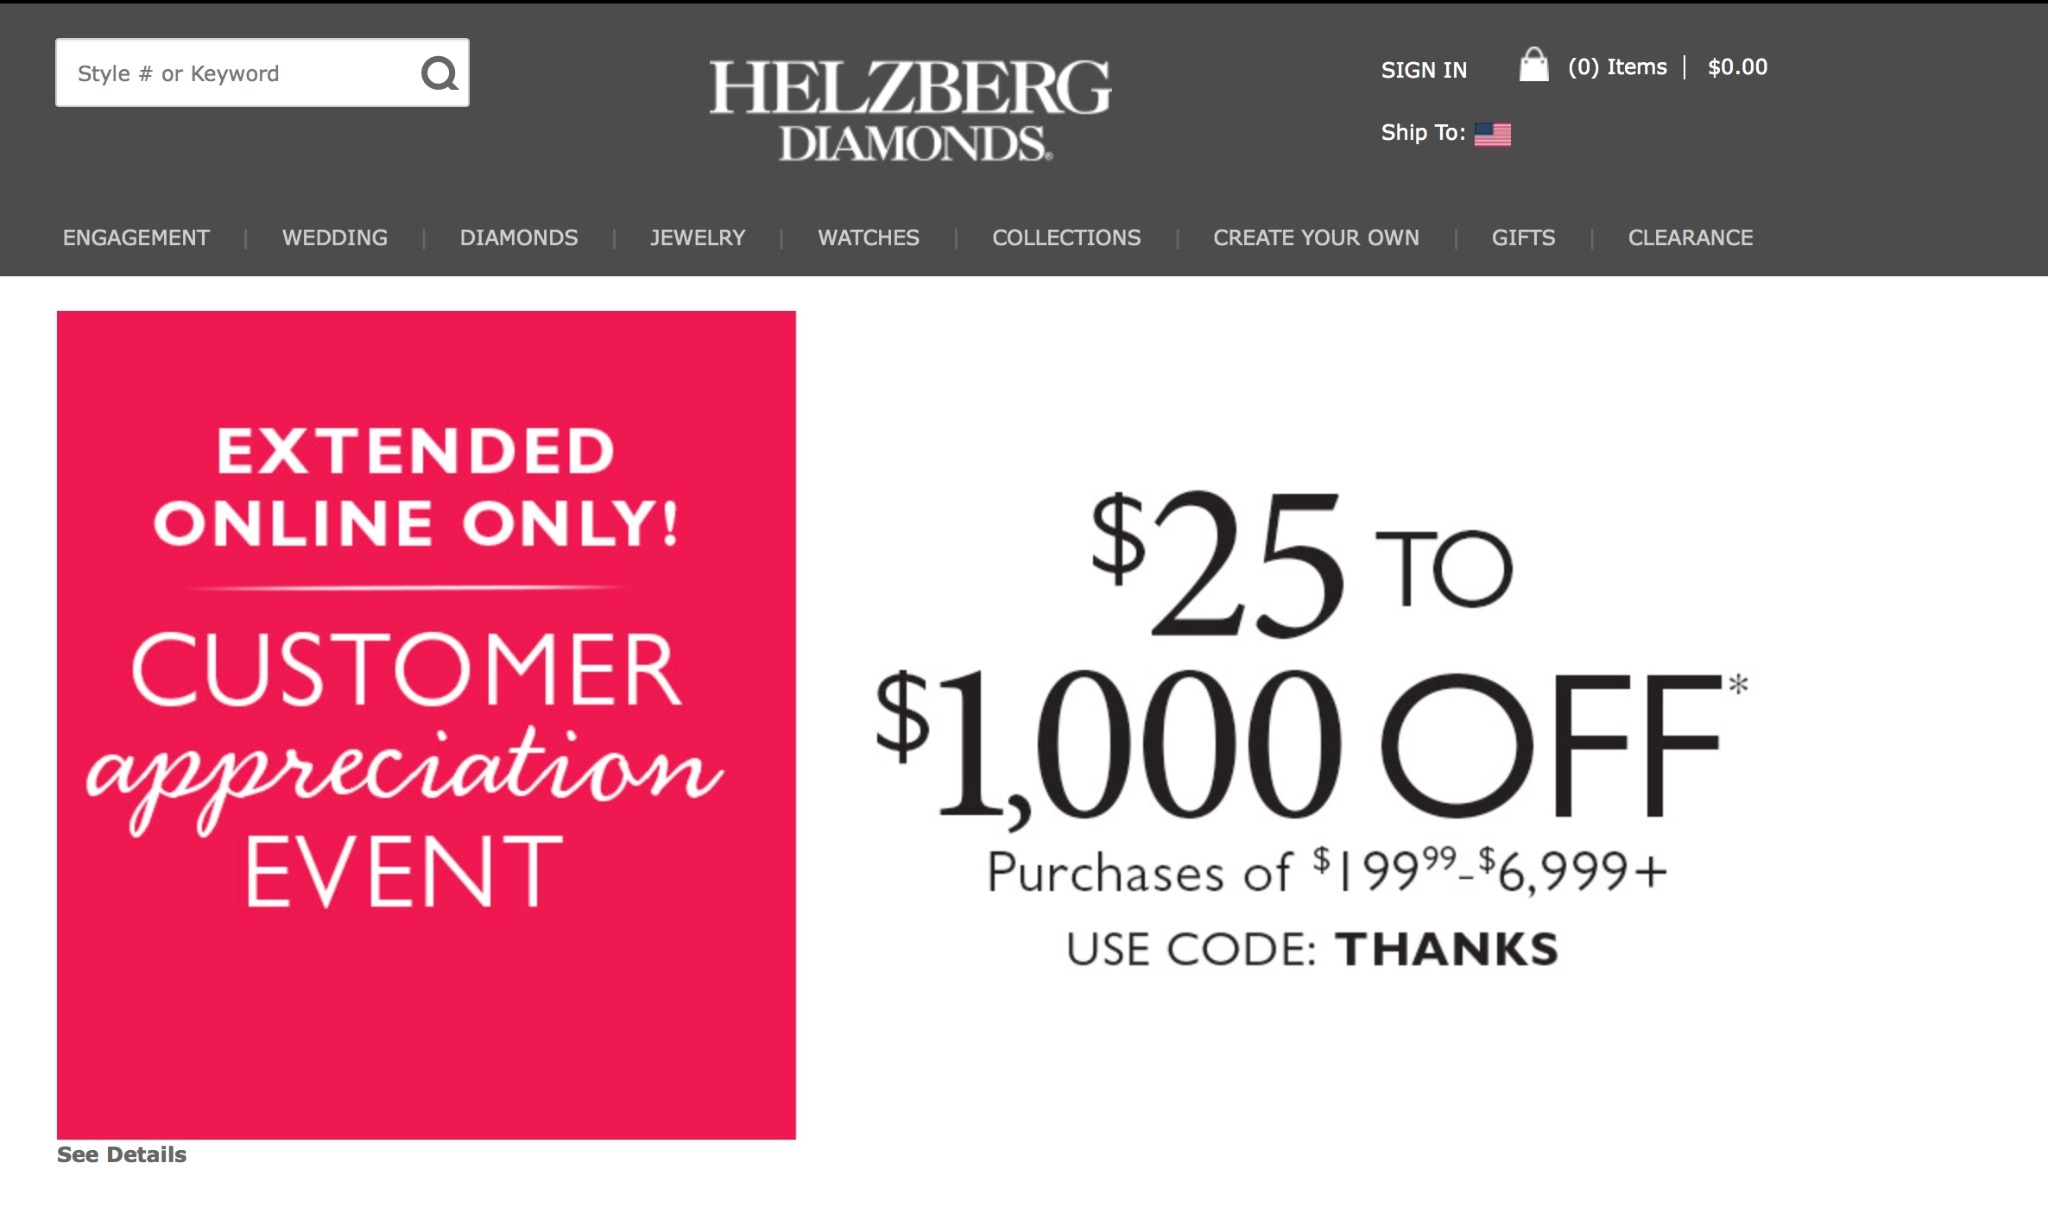 Helzberg coupon code